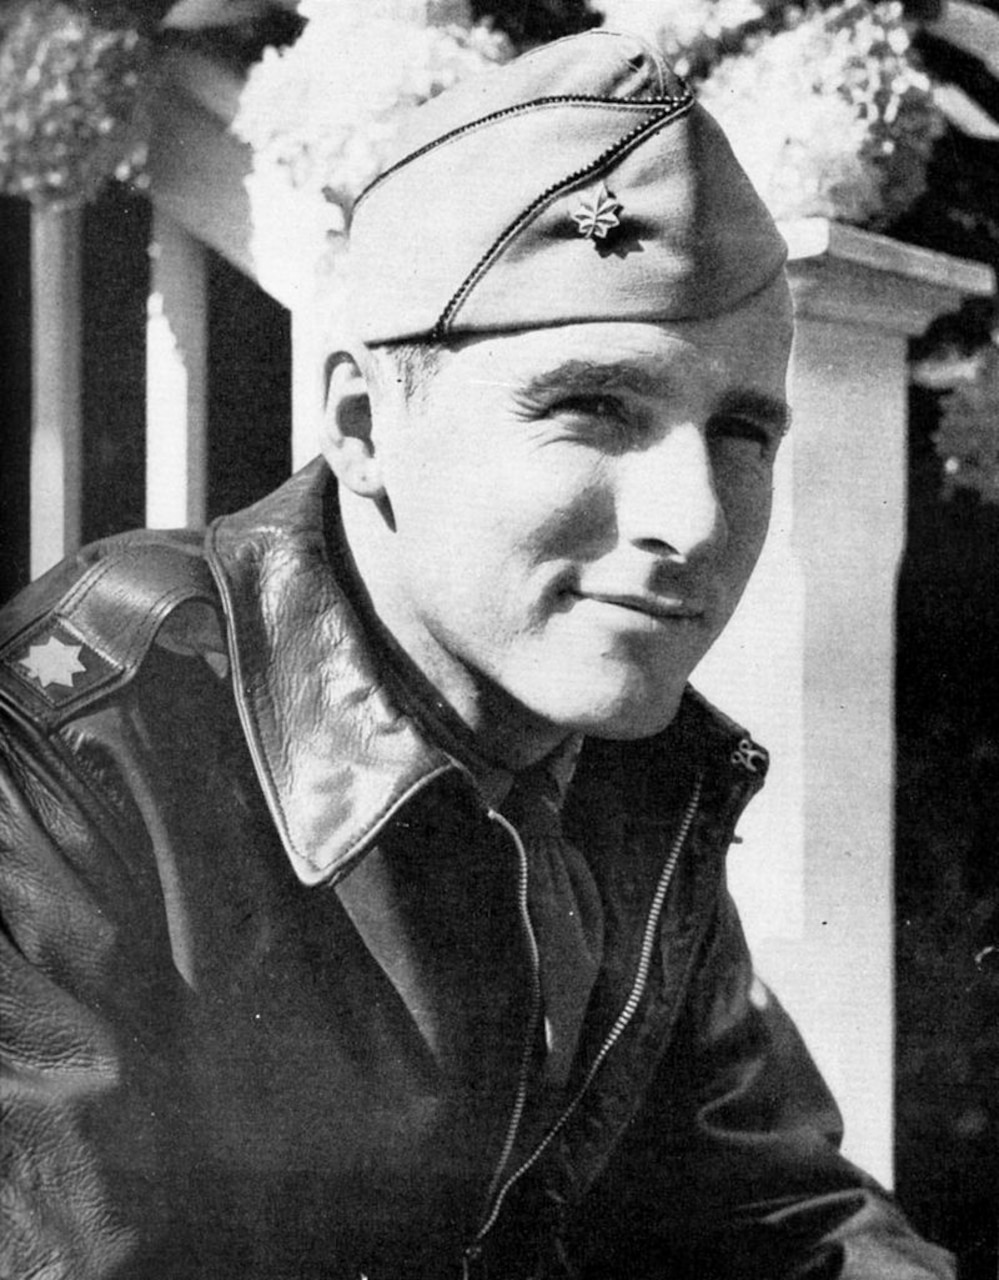 A man in World War II army uniform poses for a photo.